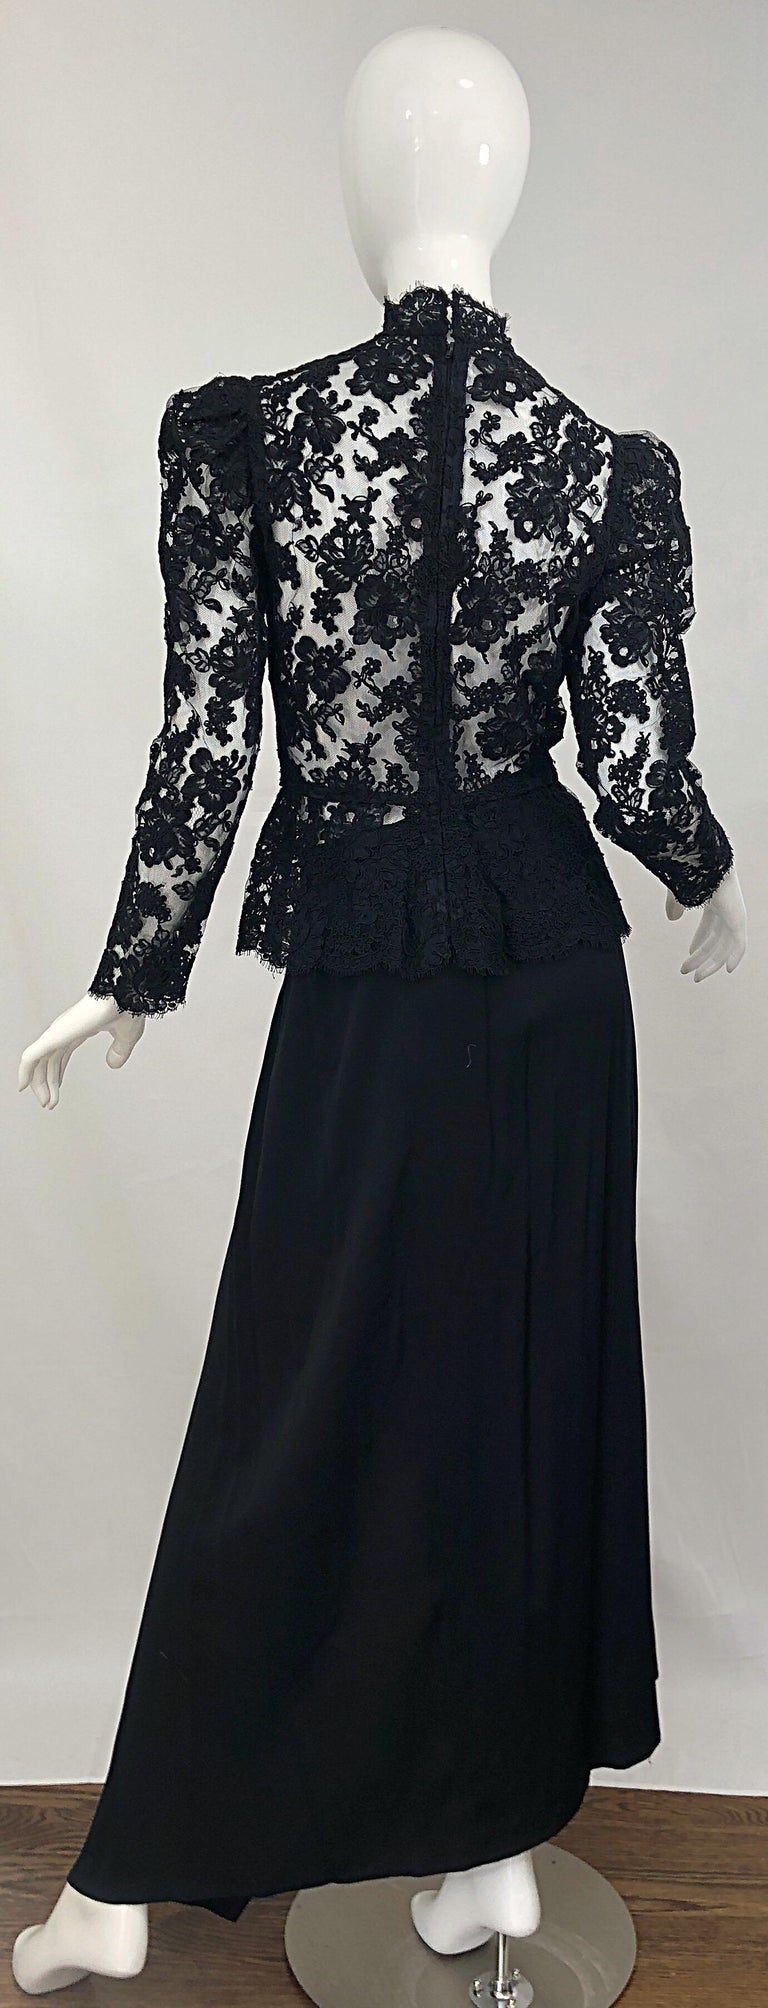 Women's Vintage Vicky Tiel Couture 1980s Black Lace Victorian Top + Asymmetrical Skirt For Sale